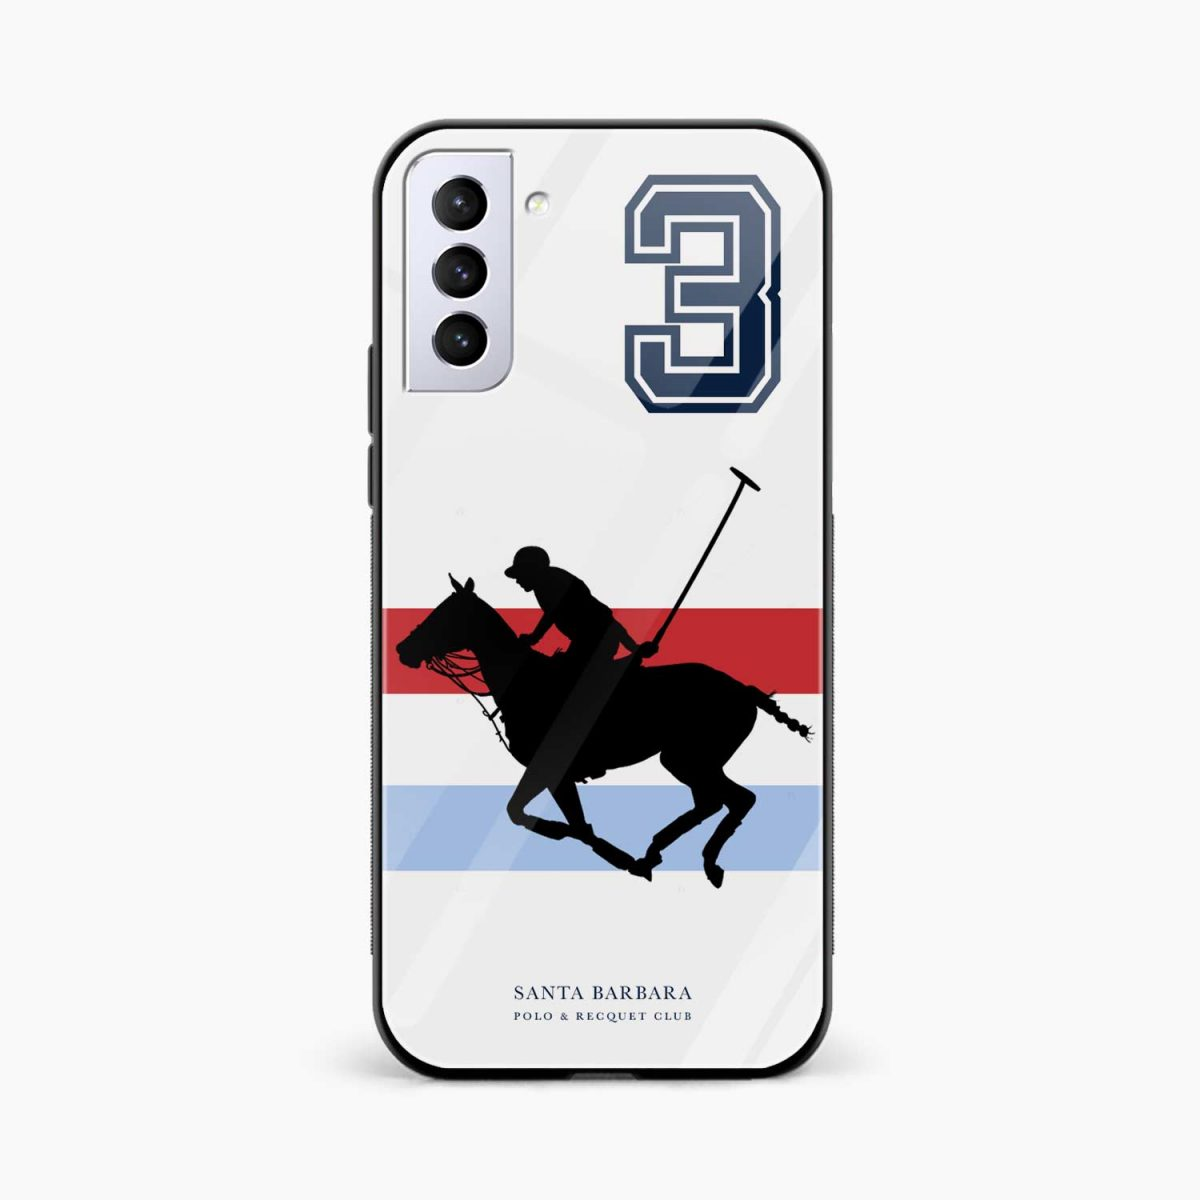 sant barbara polo front view samsung s21 plug back cover